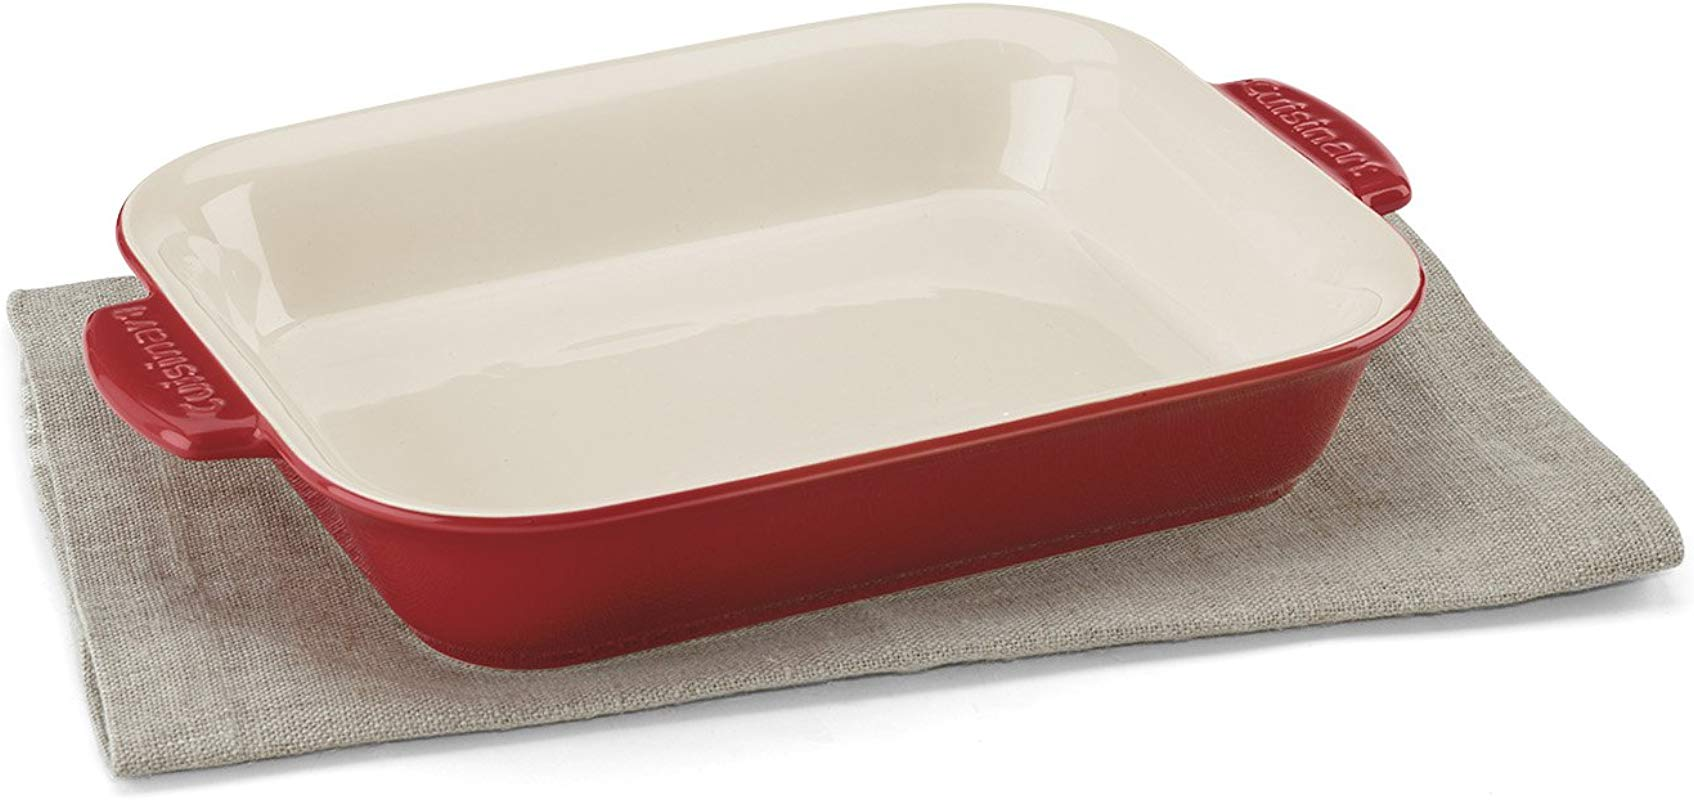 Cuisinart CCB30 27R Chef S Classic Ceramic Bakeware 2 Quart Medium Rectangular Baker Red